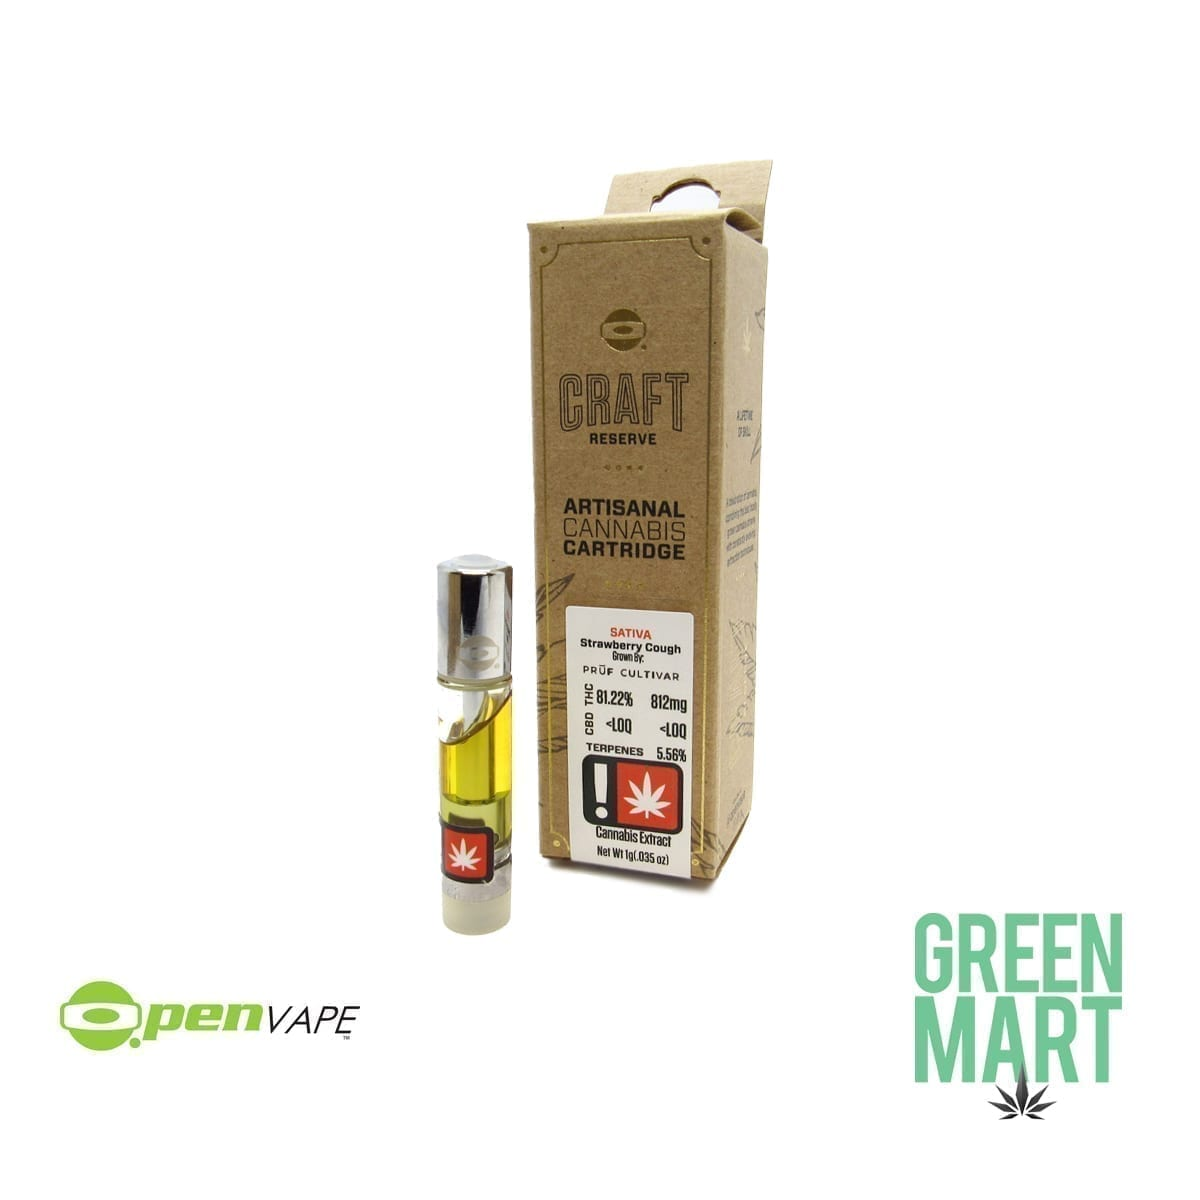 O.Pen Craft Reserve Cartridge - Strawberry Cough